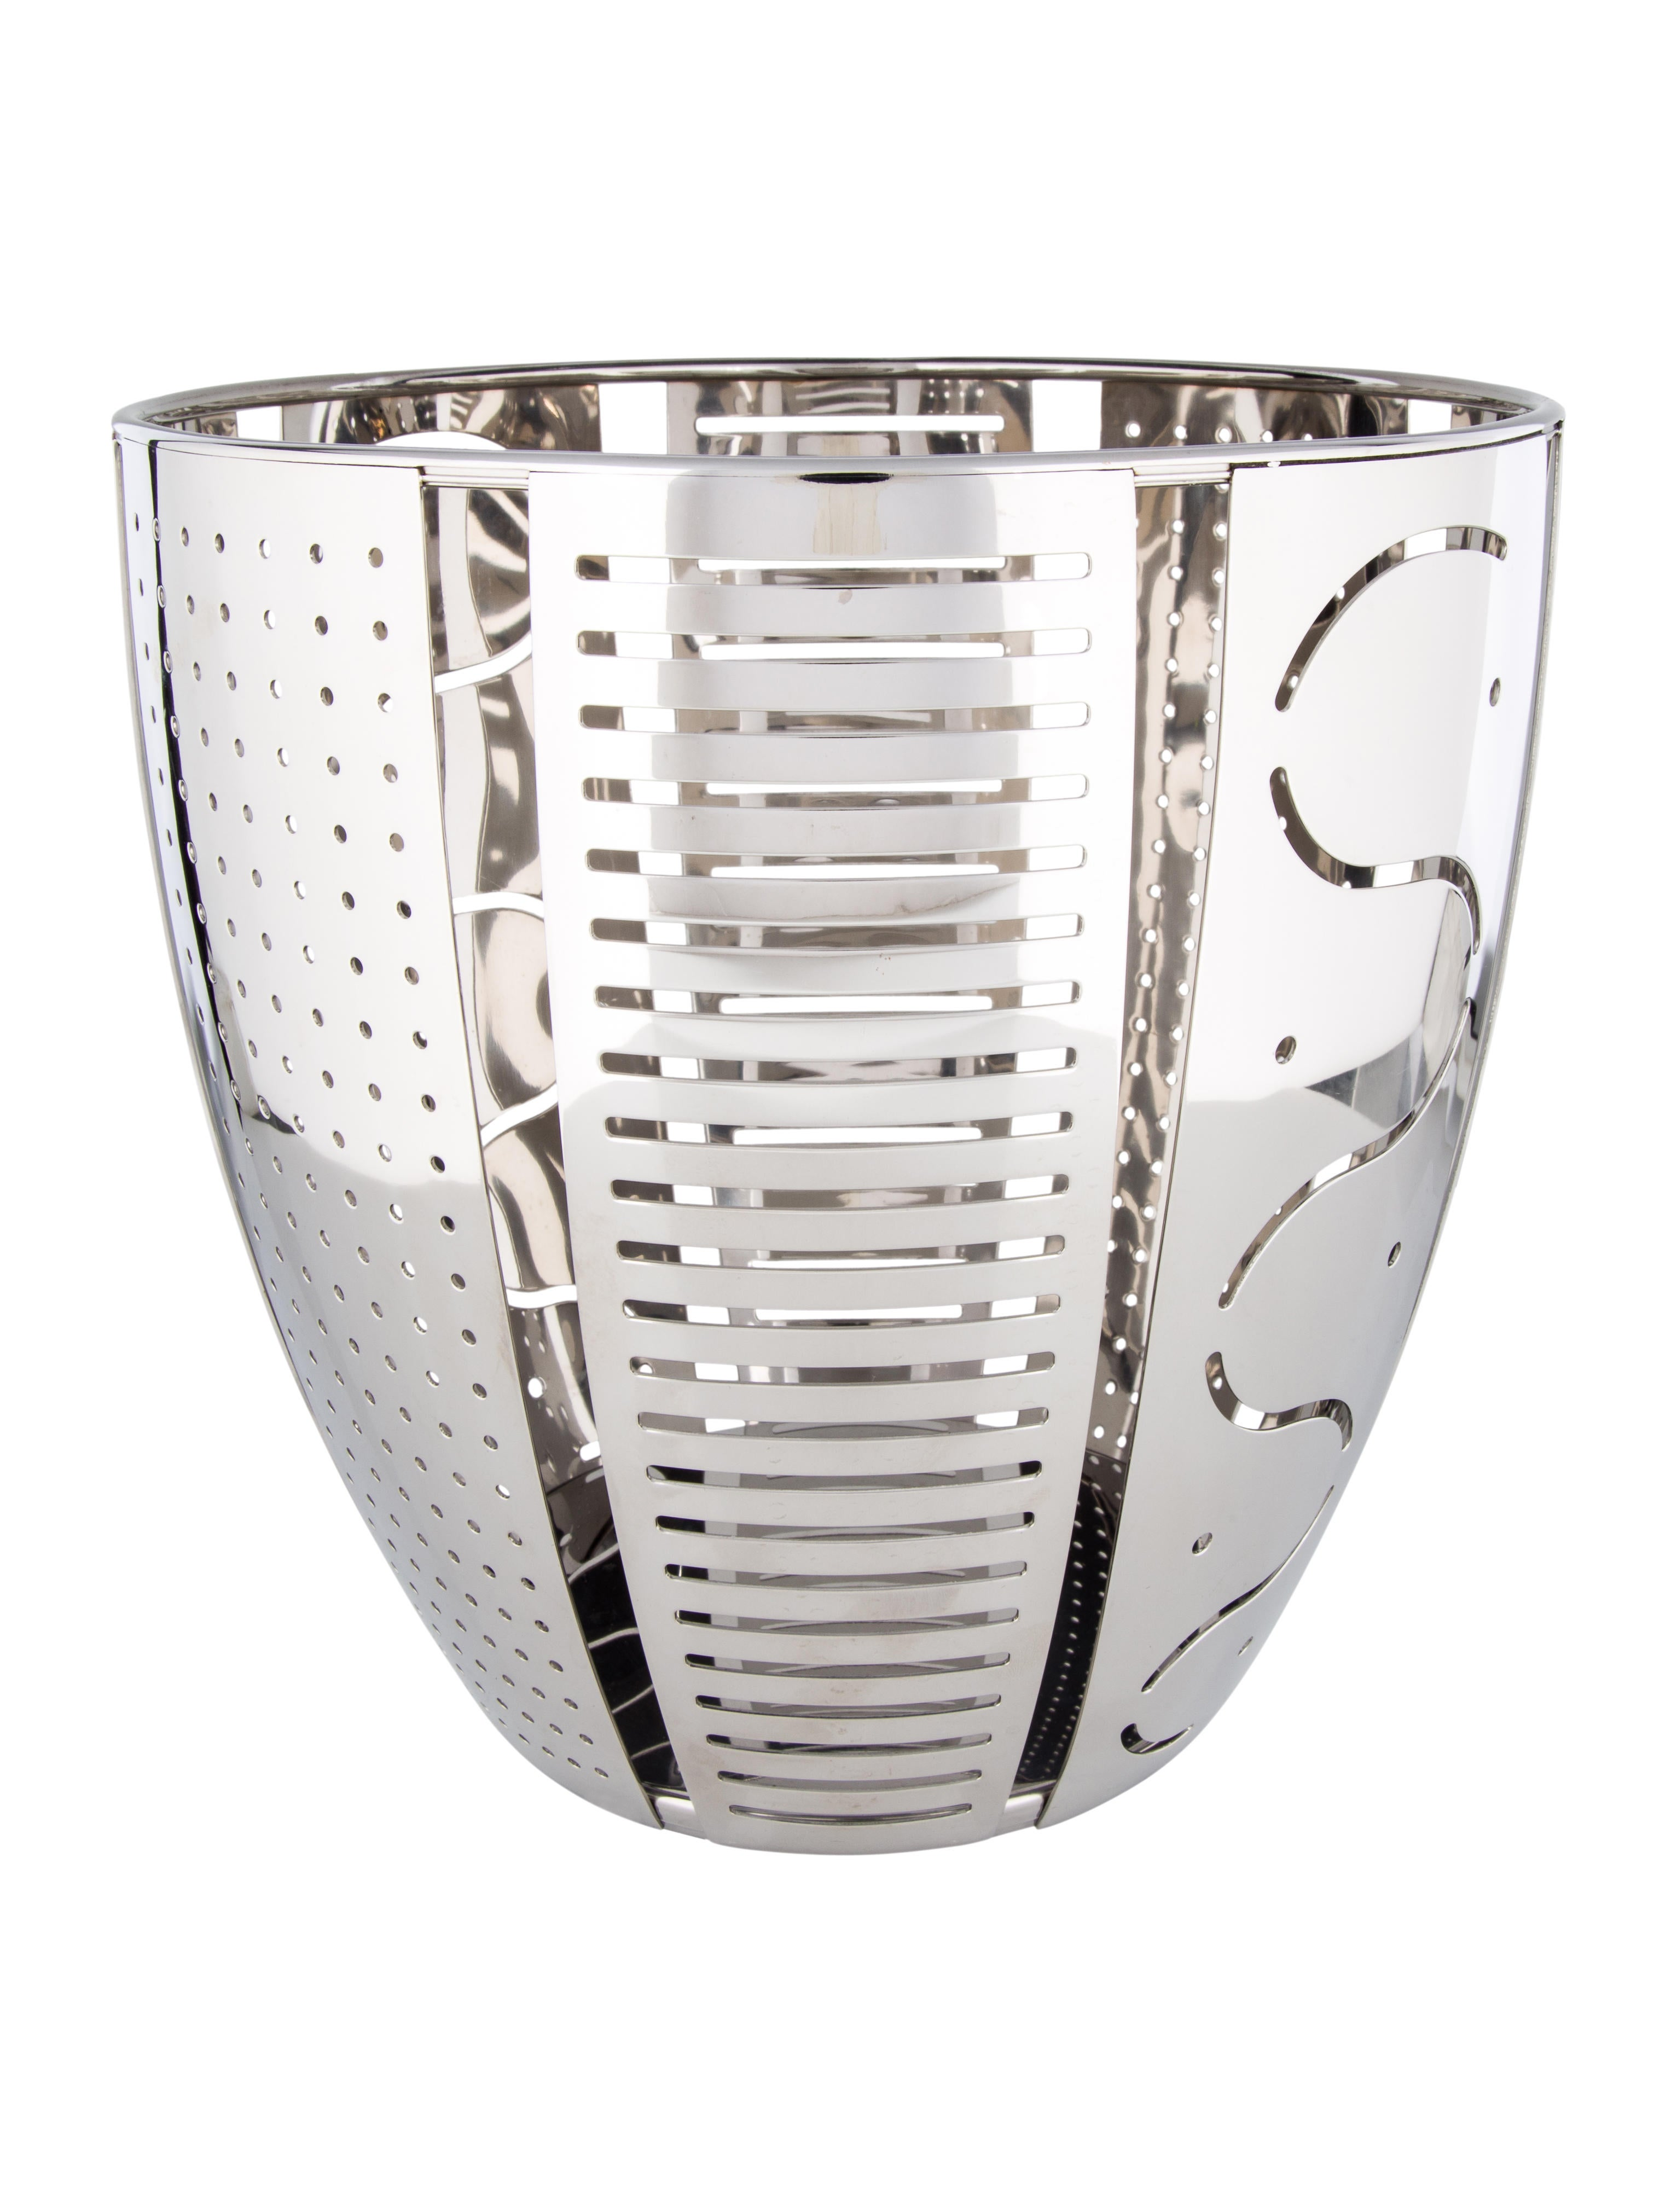 Alessi helmut fruit basket tabletop and kitchen aei20250 the realreal - Alessi fruit basket ...